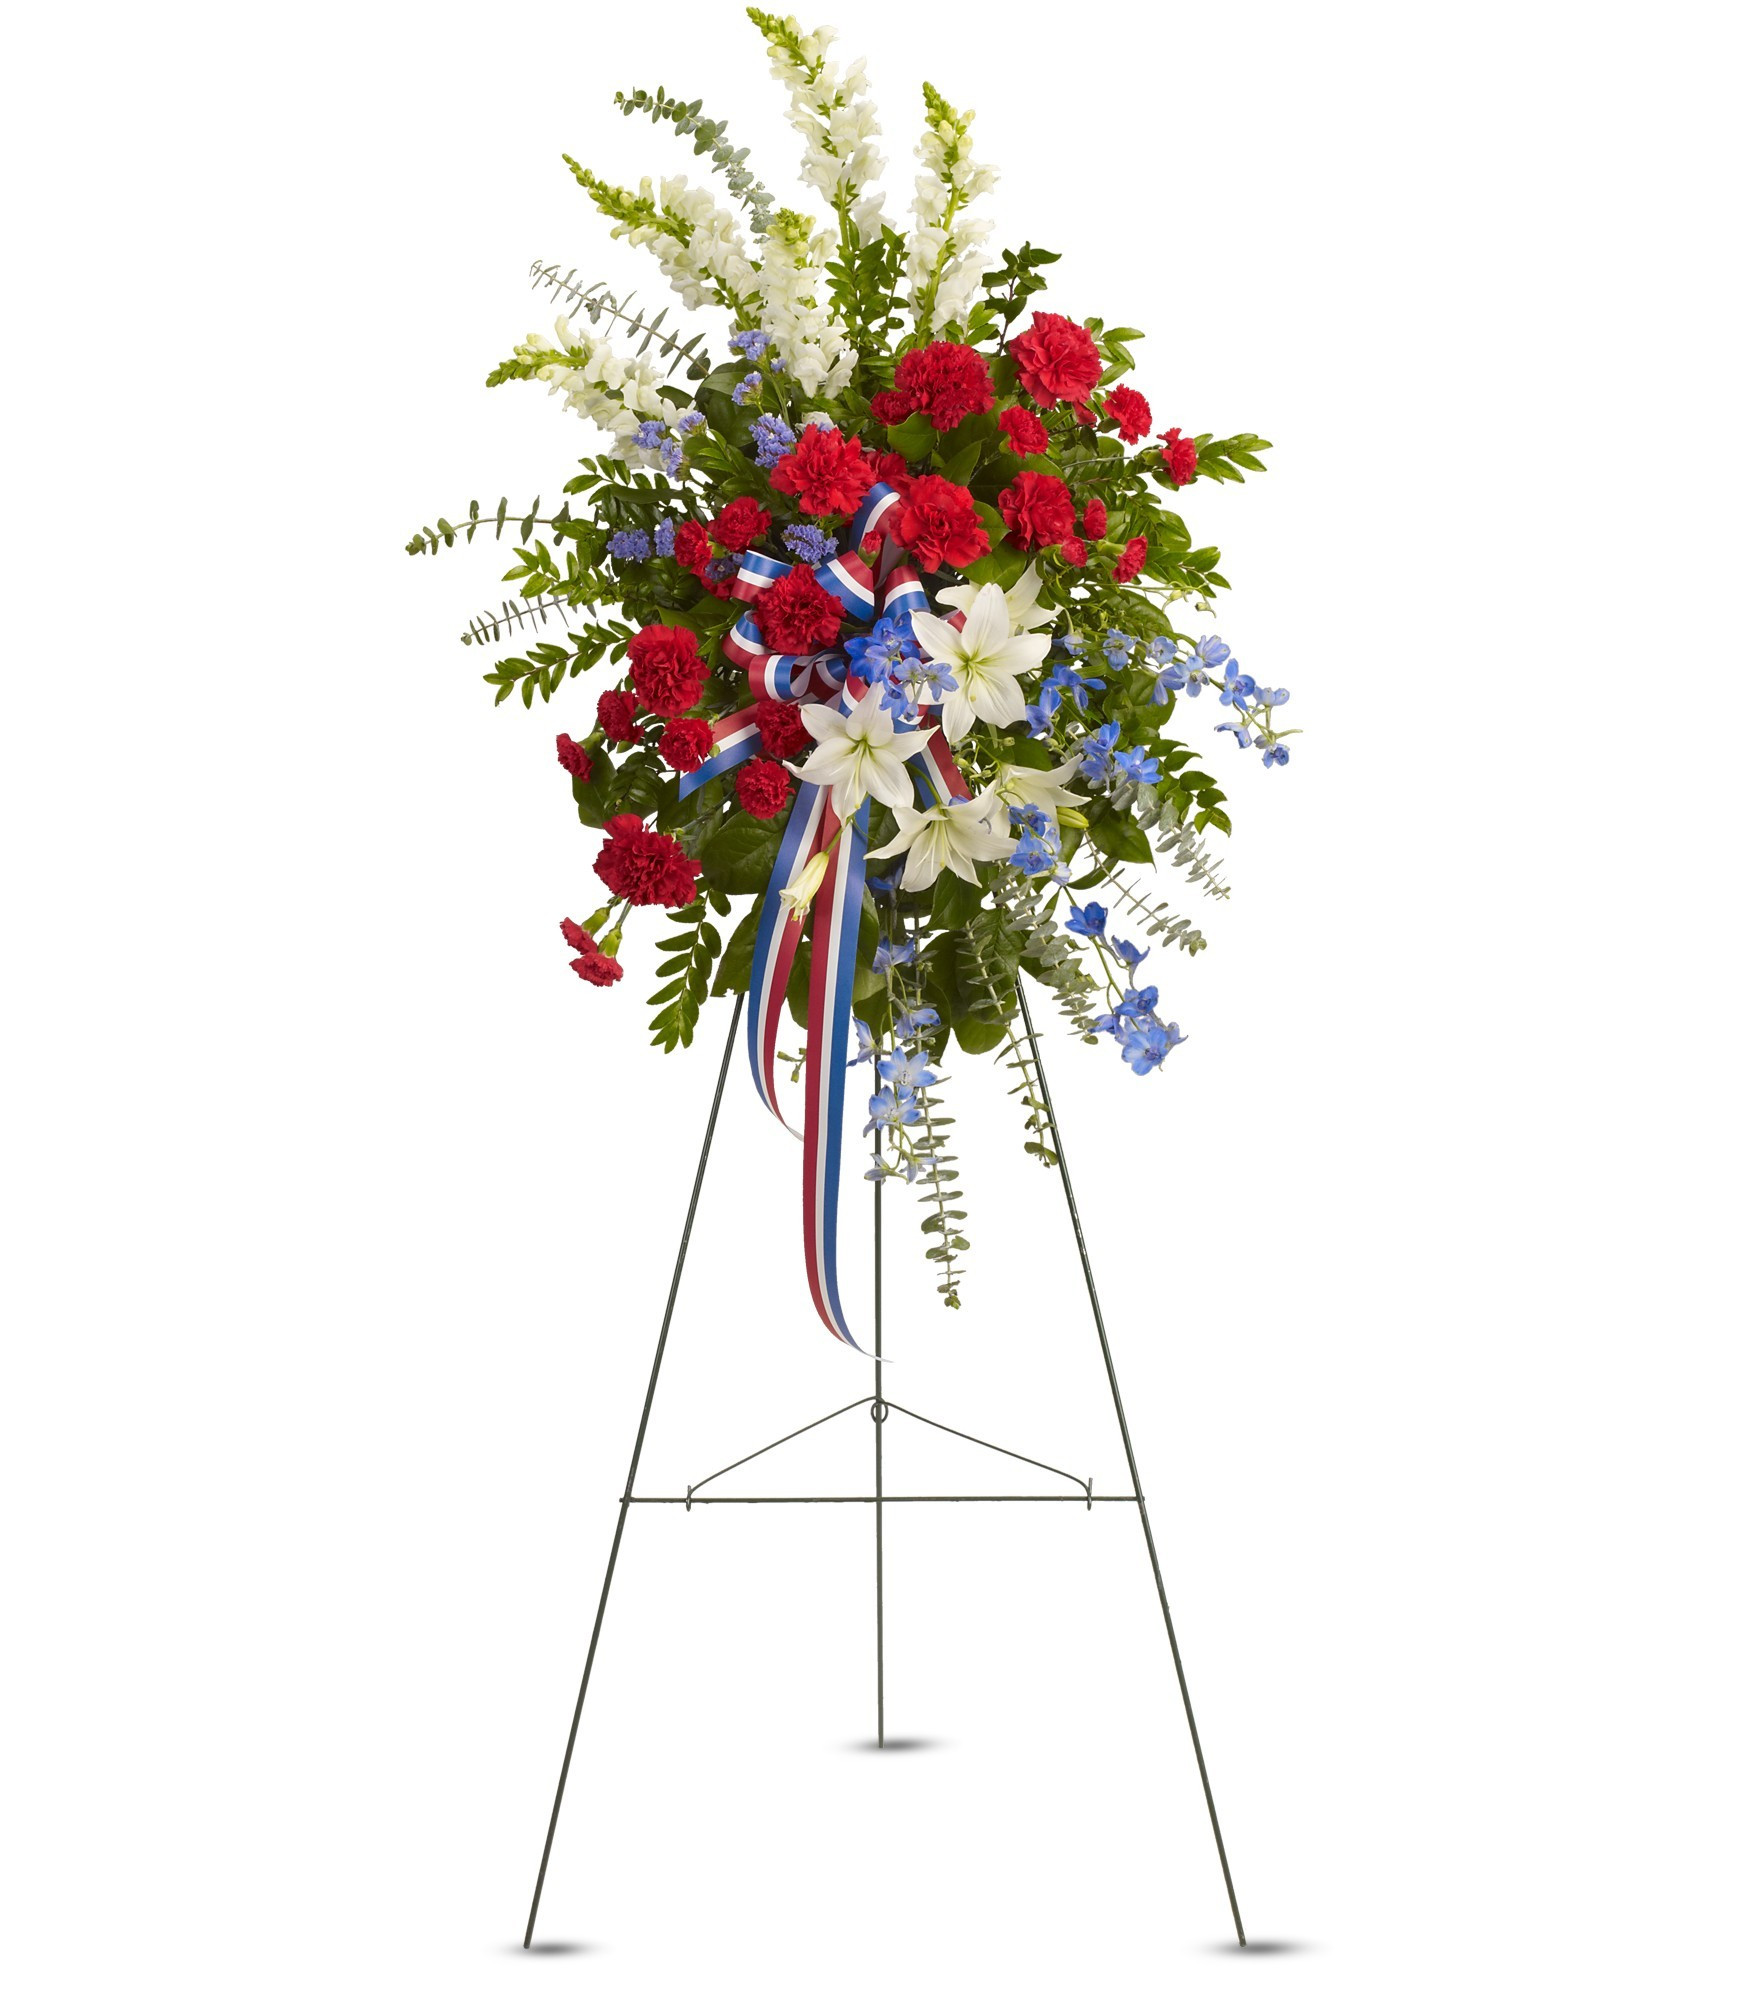 teleflora gift vase of sacred duty spray by teleflora t240 2a in simi valley ca with regard to sacred duty spray by teleflora t240 2a